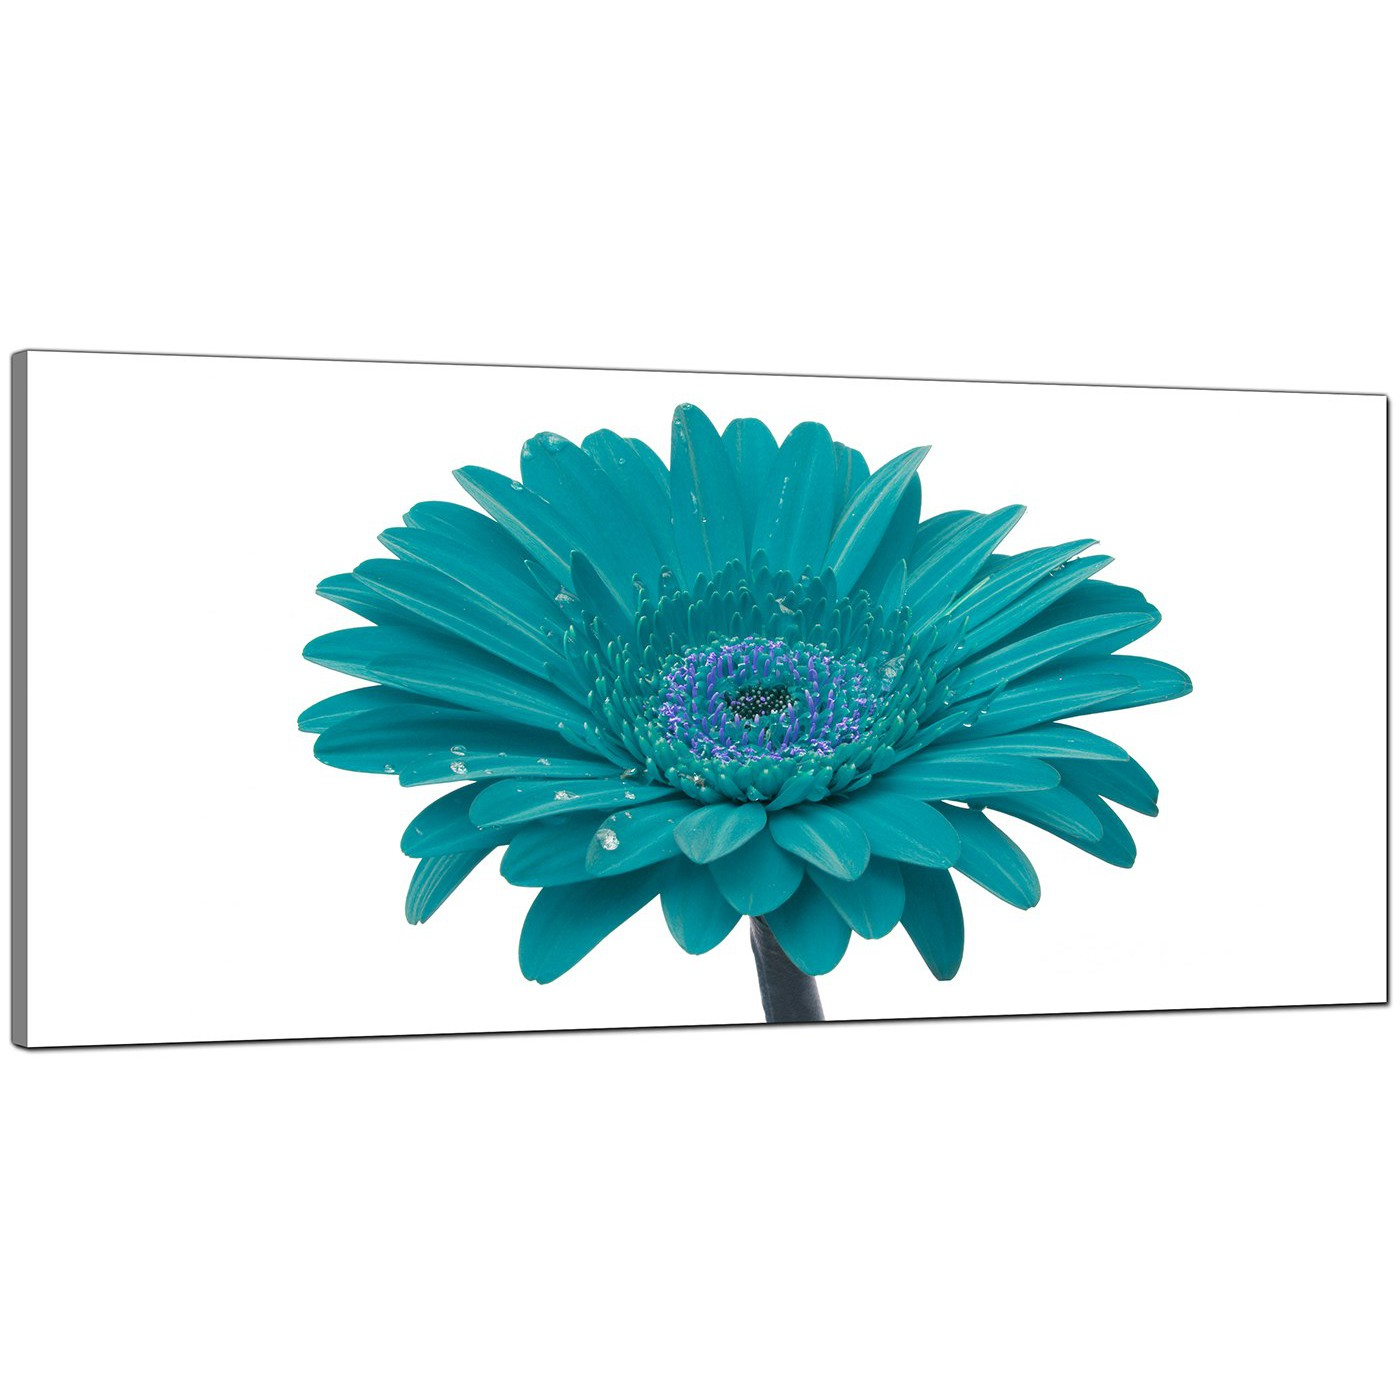 Cheap Teal Canvas Pictures Of A Daisy Flower